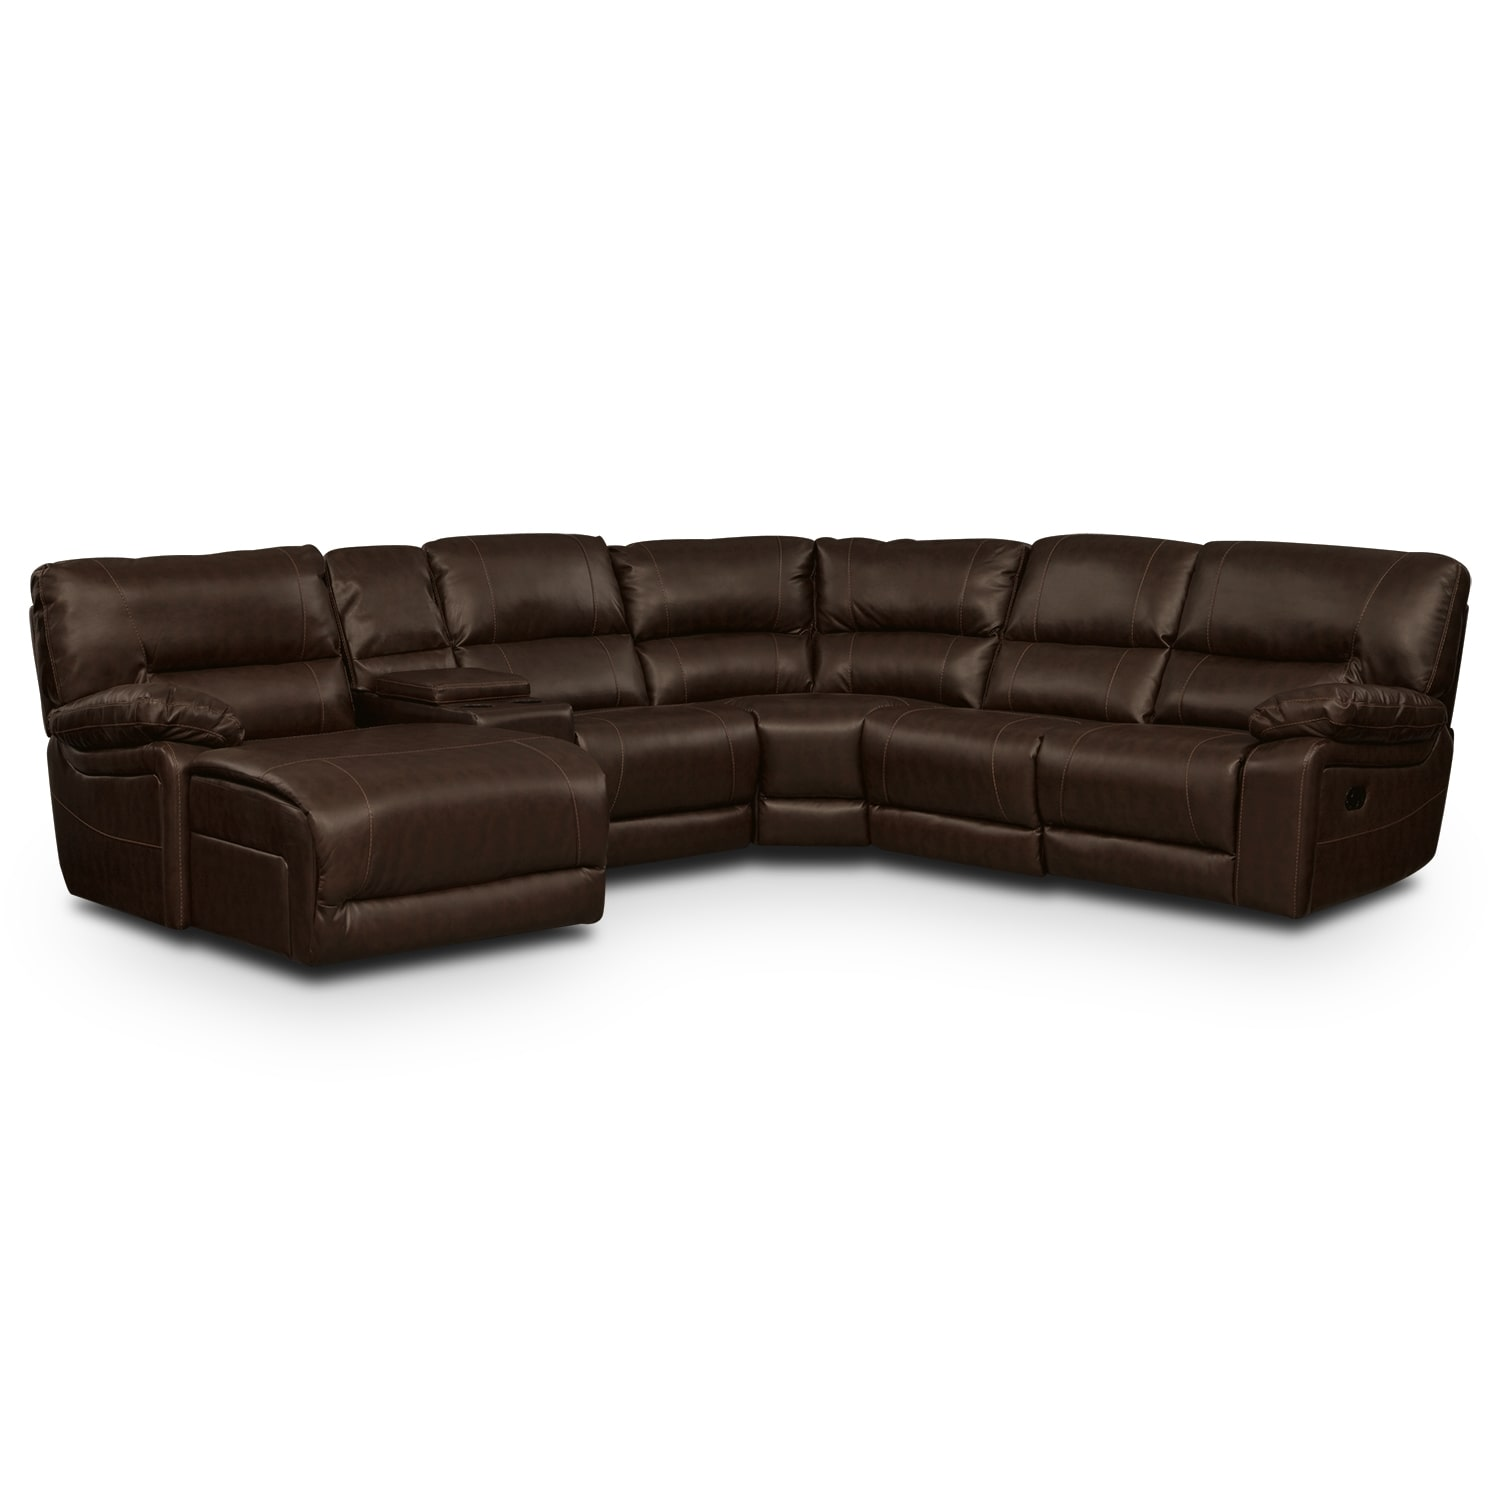 [Wyoming Godiva 5 Pc. Reclining Sectional (Reverse)]